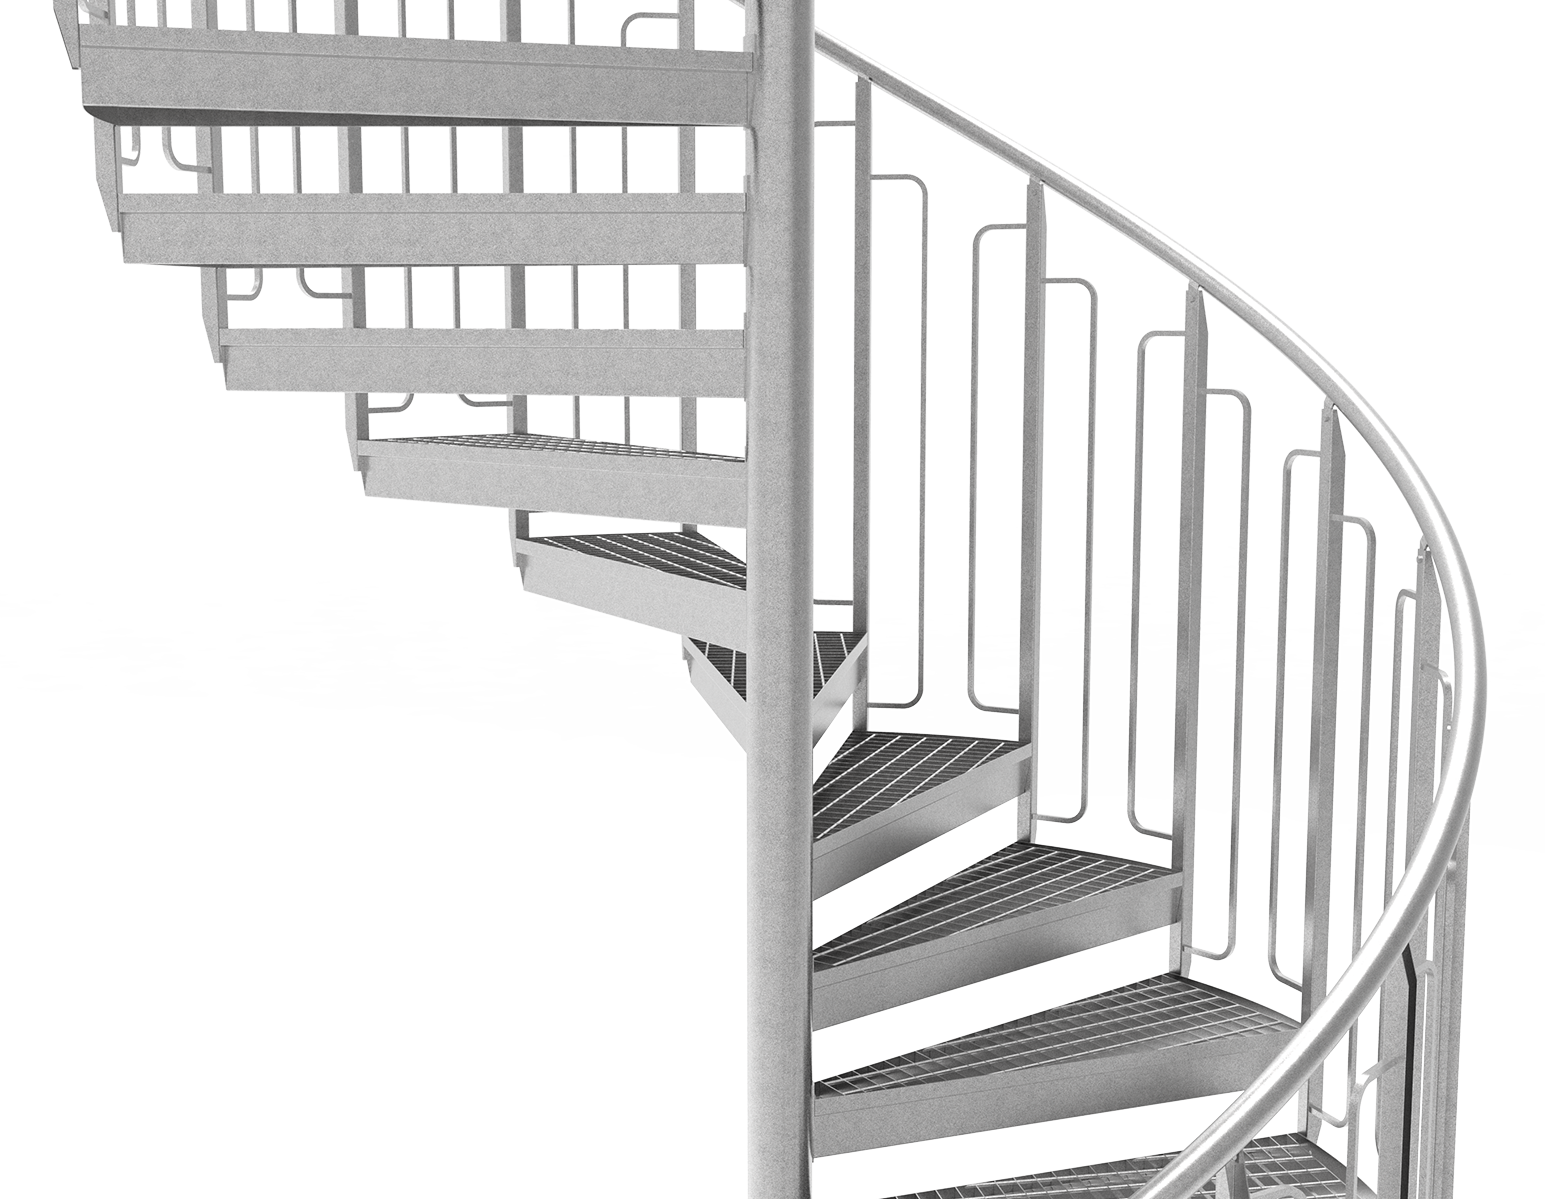 Spiral staircase child safe railing grating steps